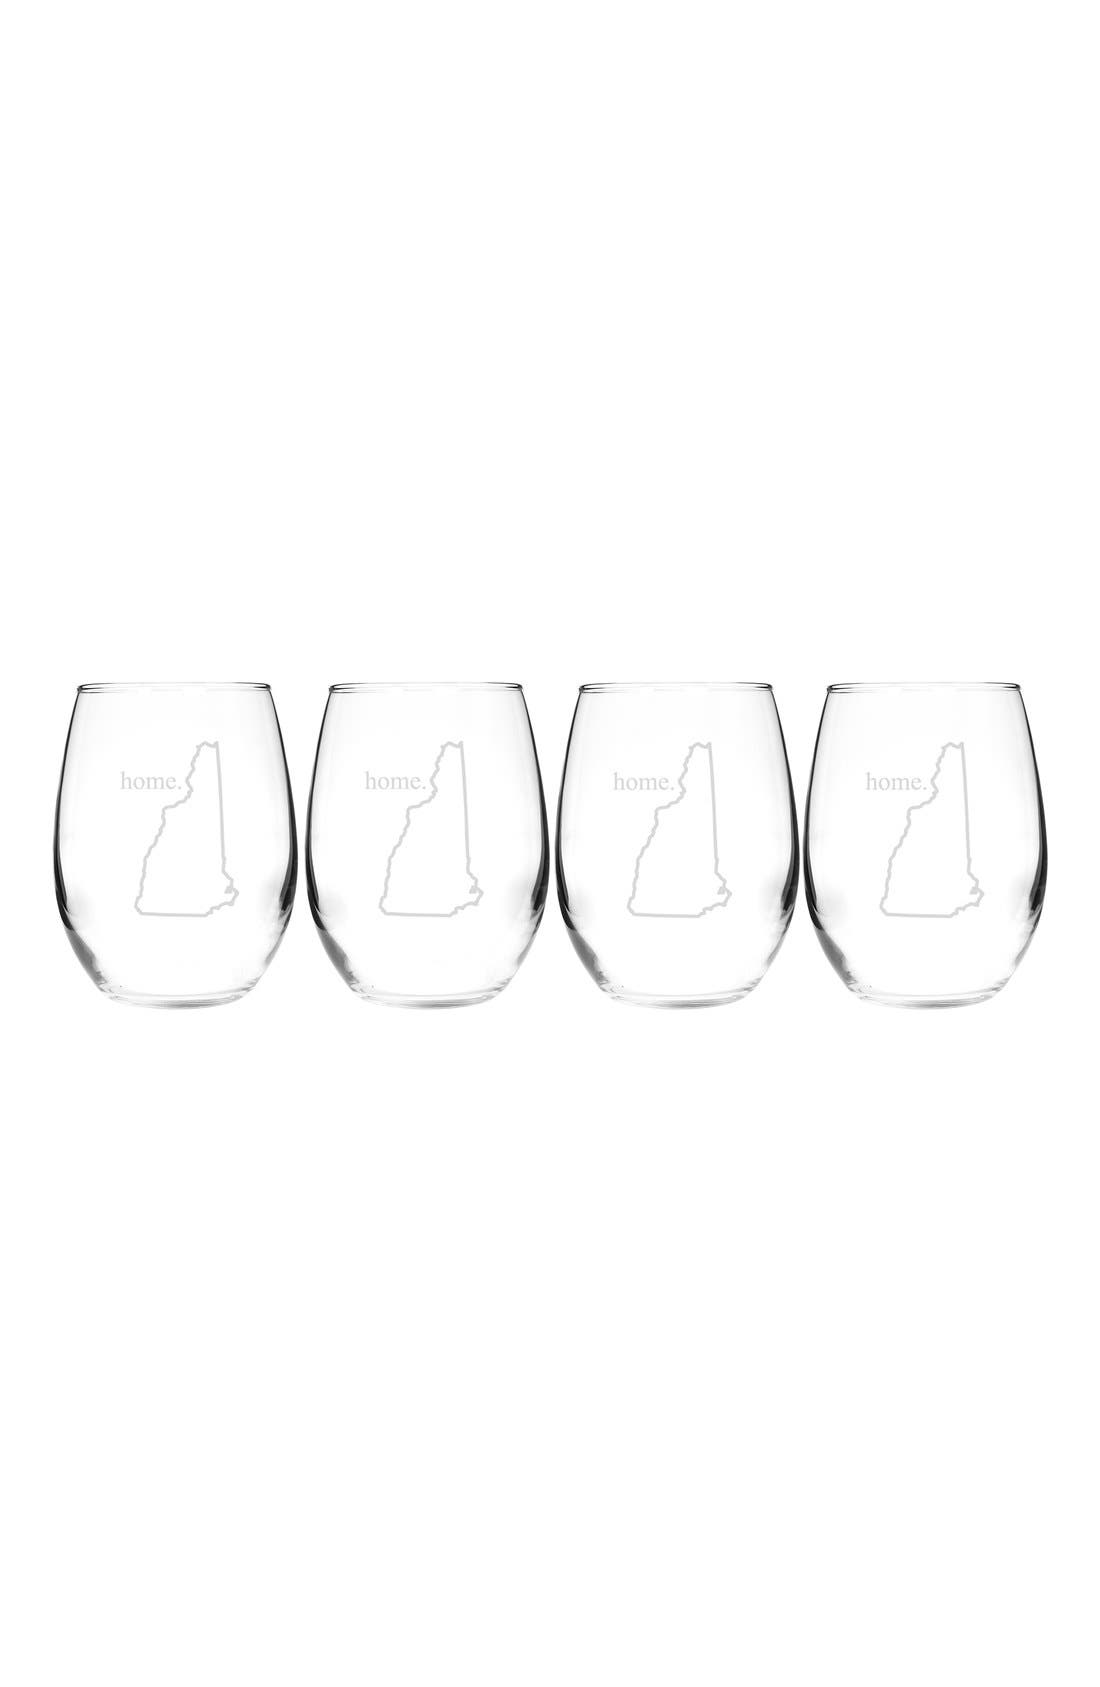 Home State Set of 4 Stemless Wine Glasses,                             Main thumbnail 31, color,